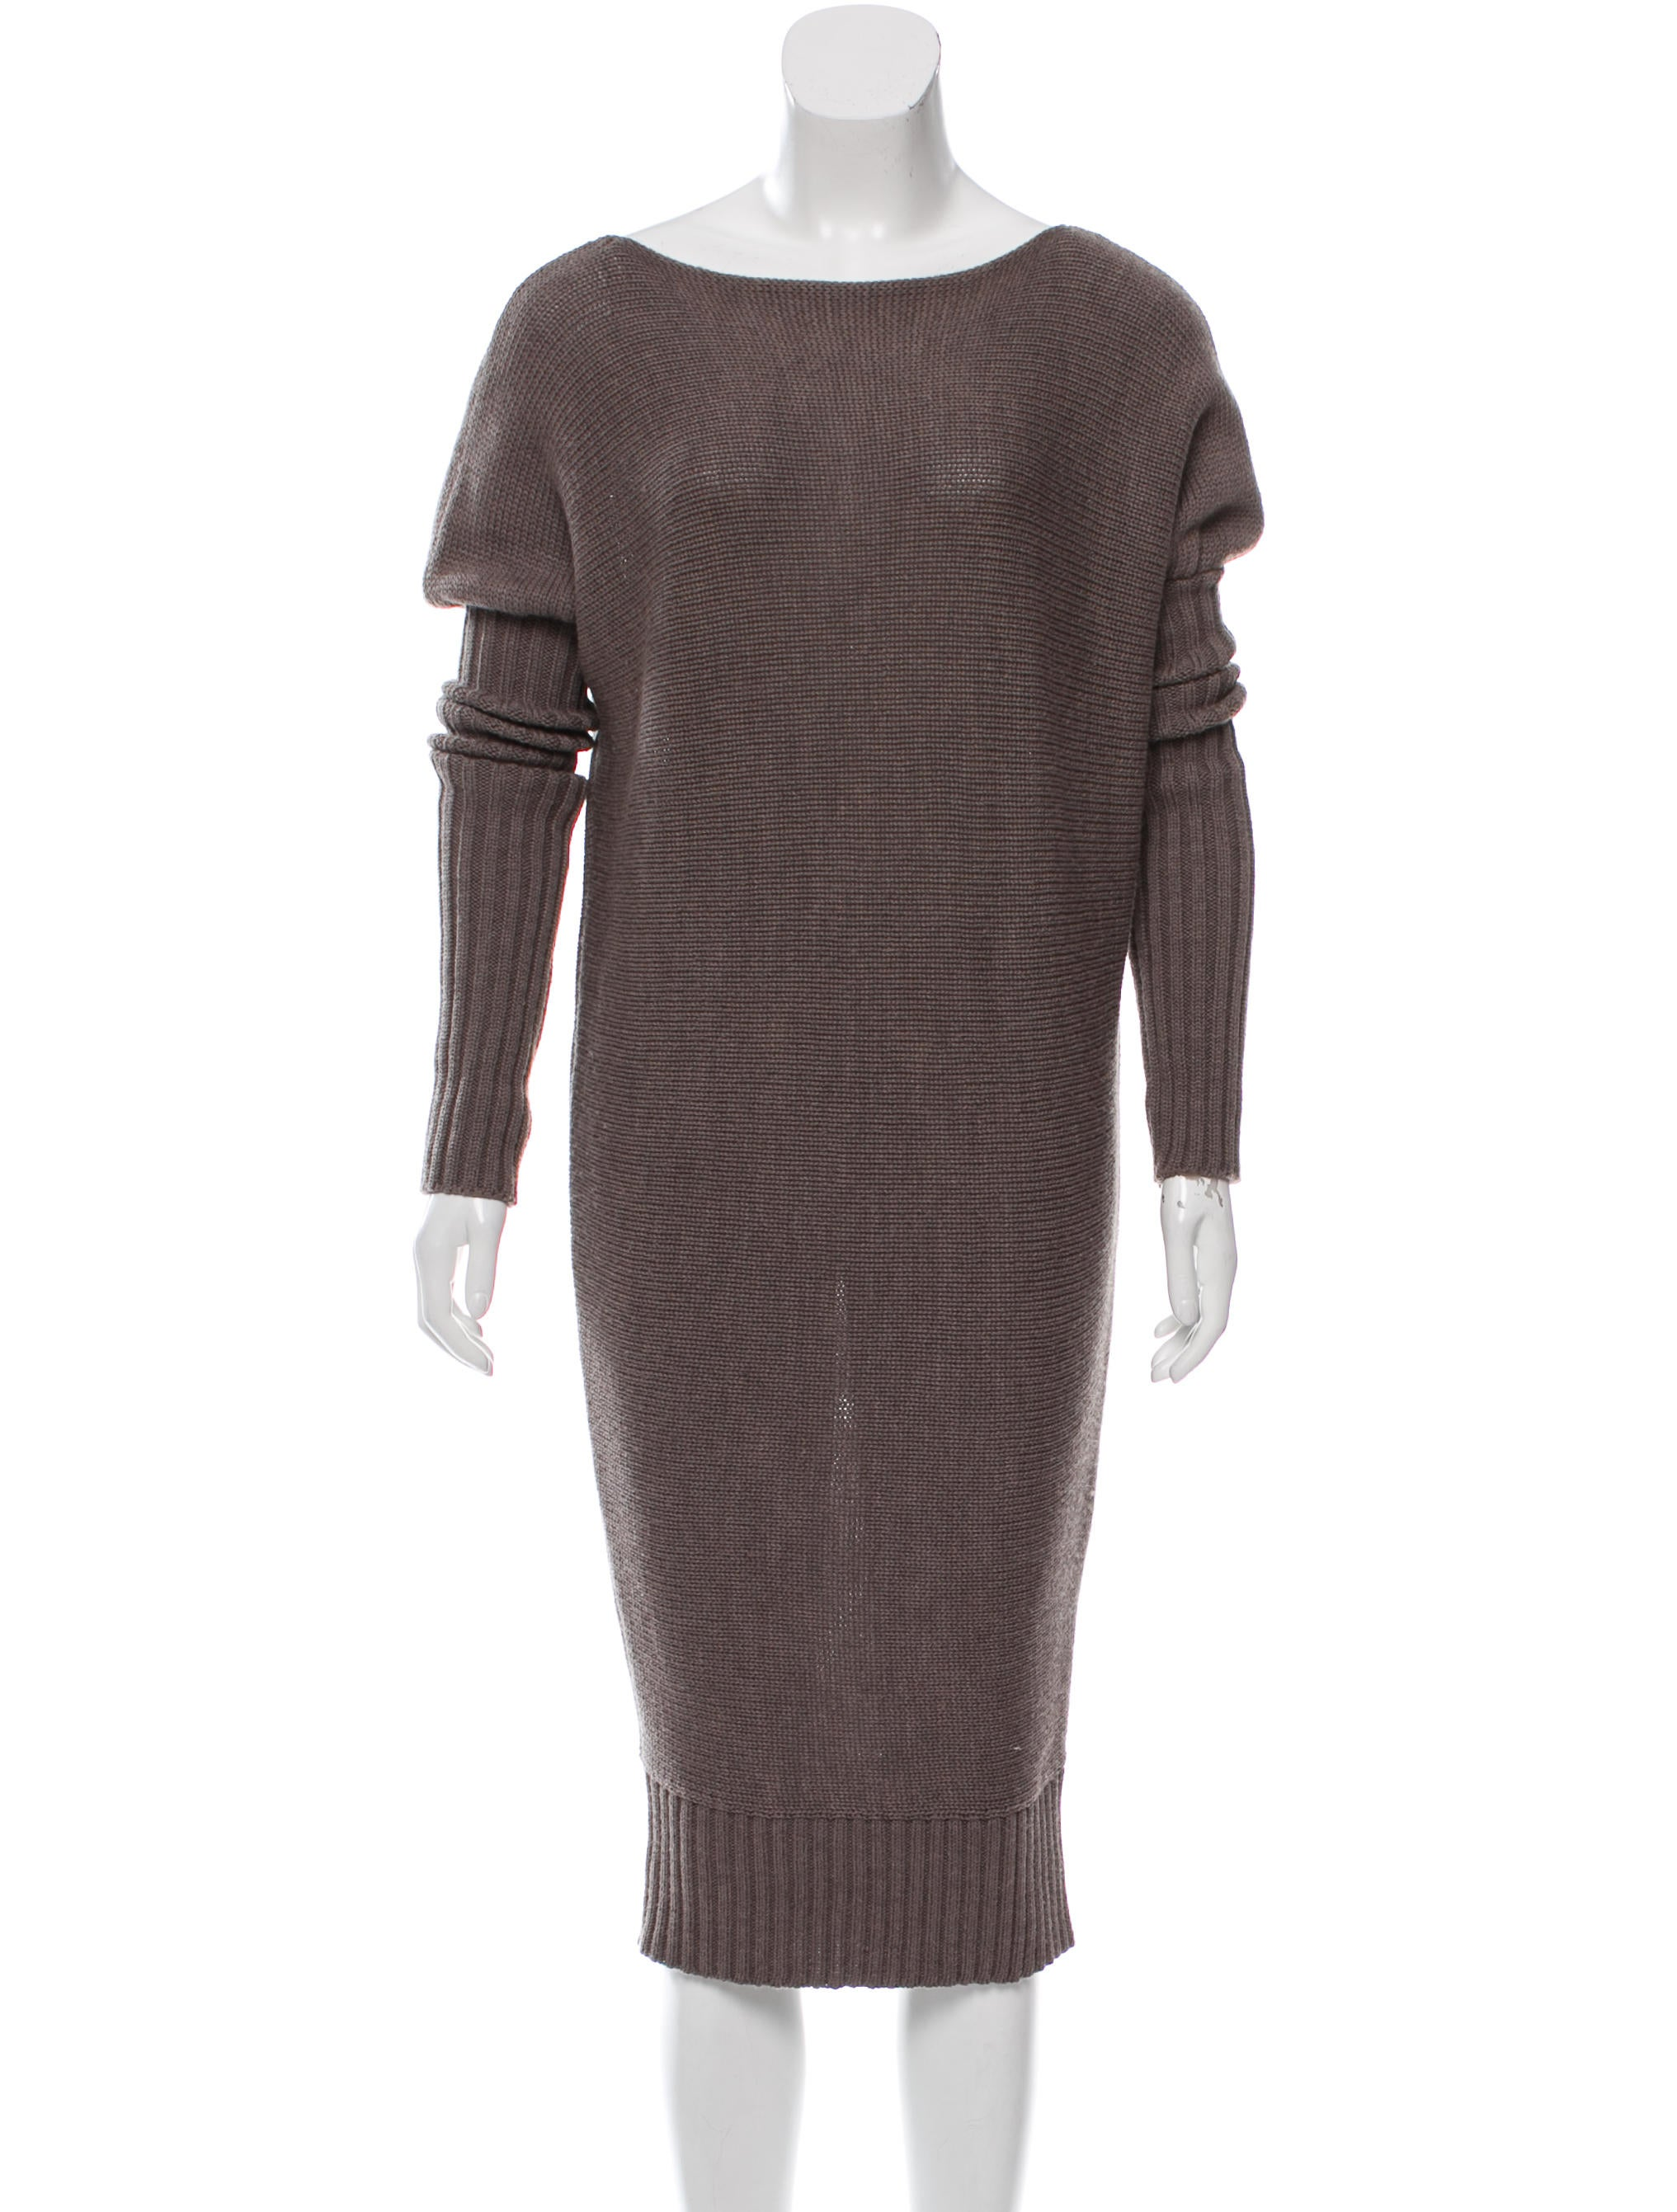 Joseph Wool Sweater Dress - Clothing - JOS23256 | The RealReal